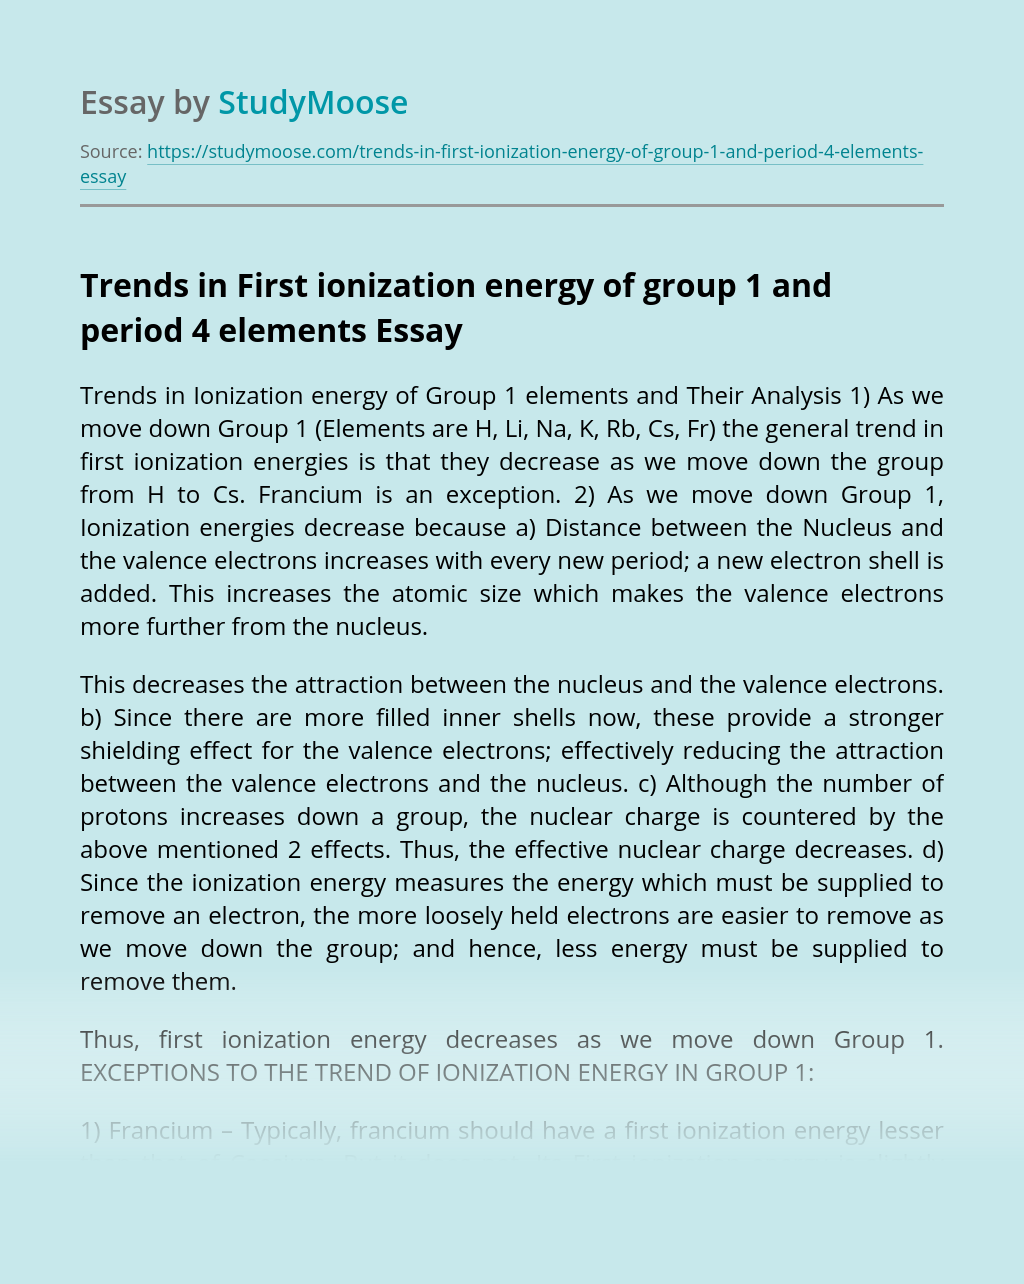 Trends in First ionization energy of group 1 and period 4 elements